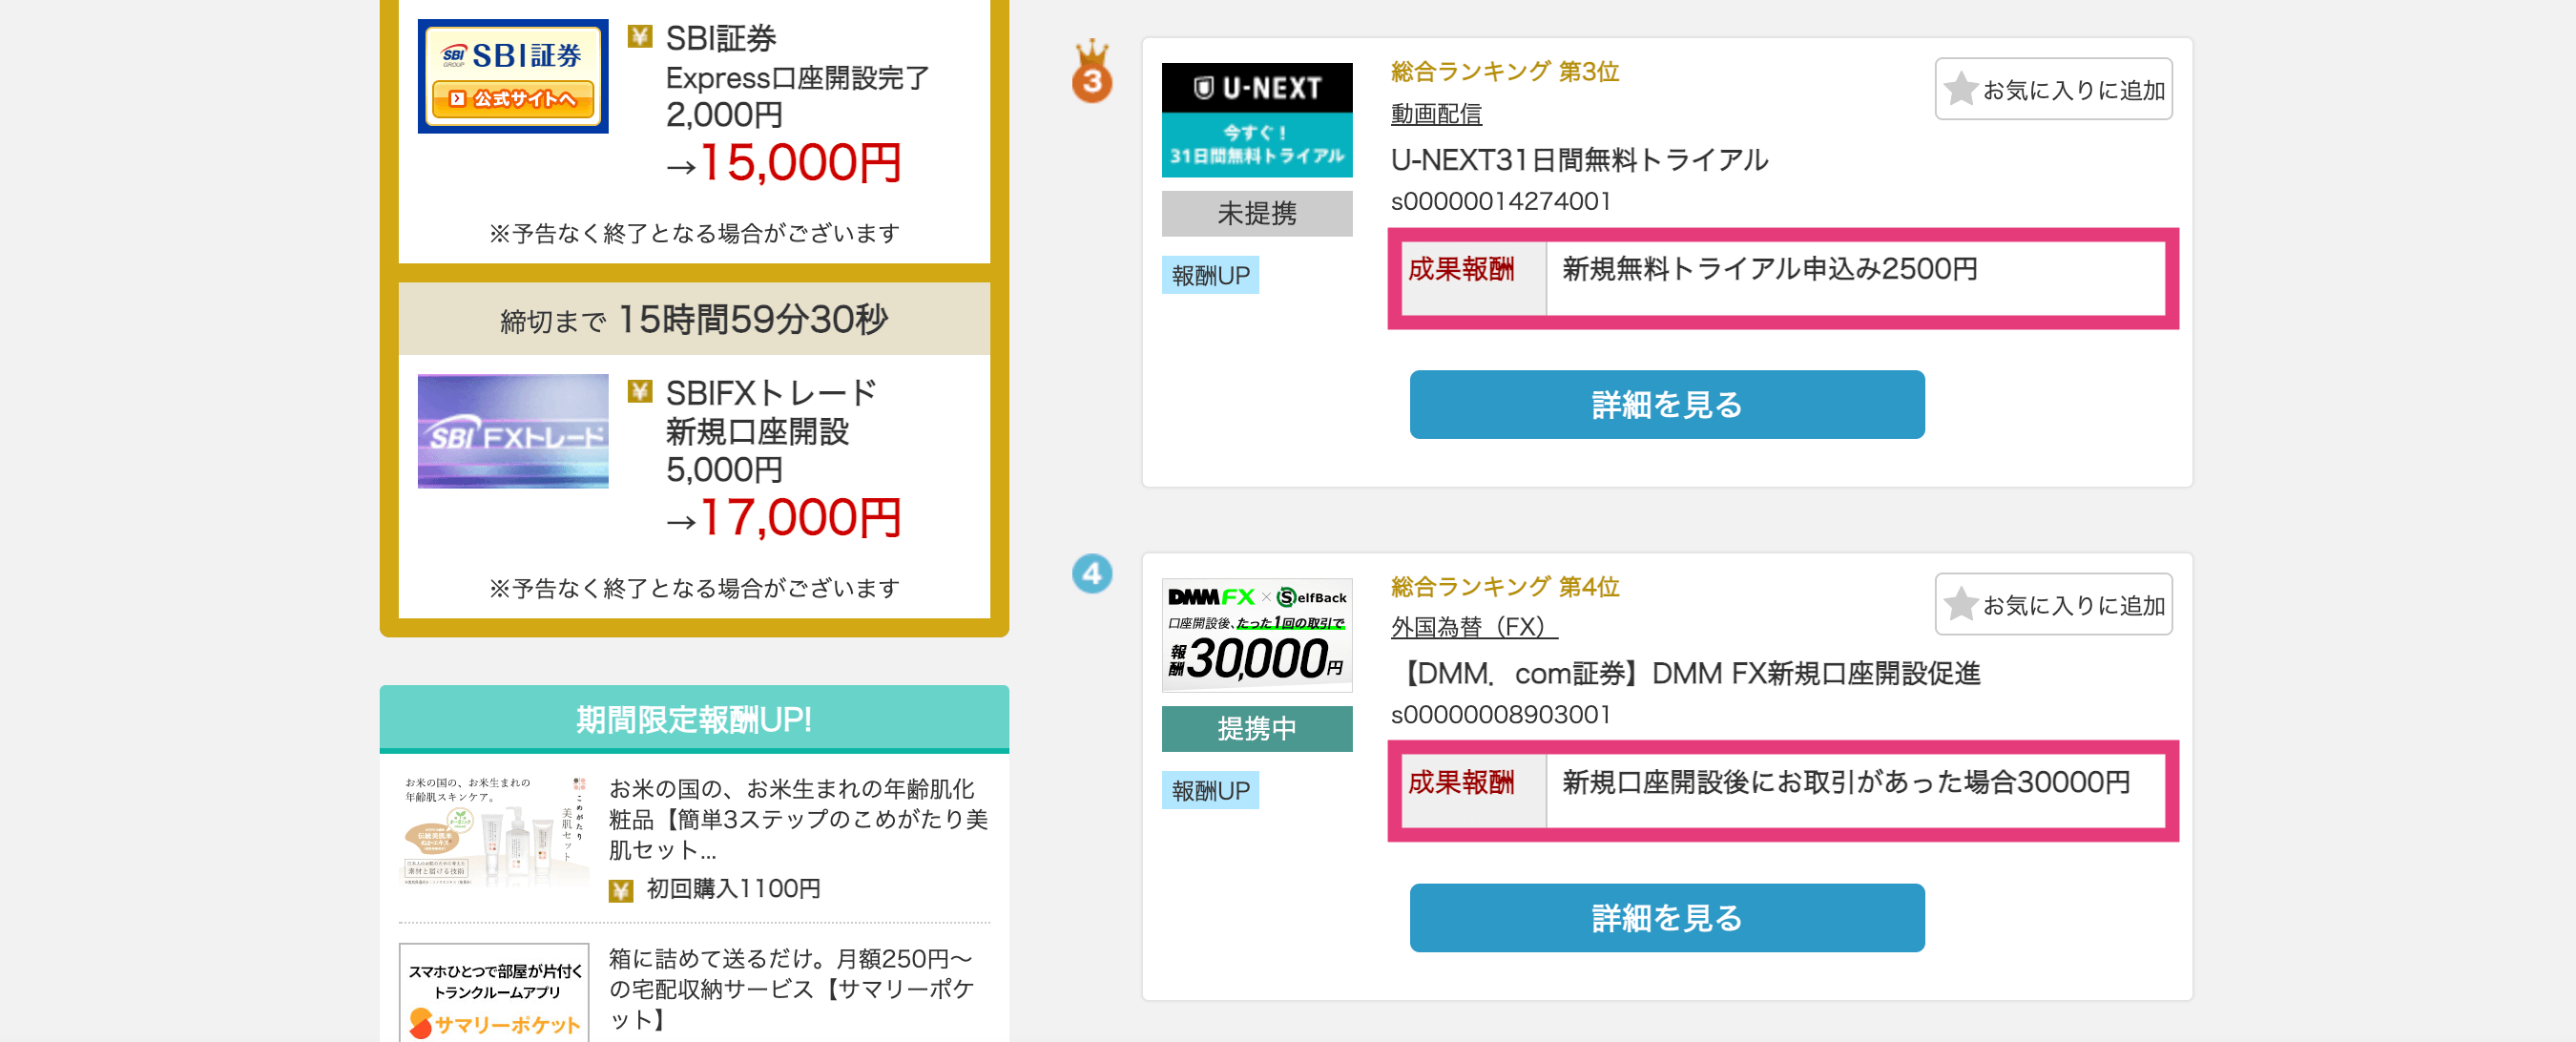 A8.net 自己アフィリエイト2